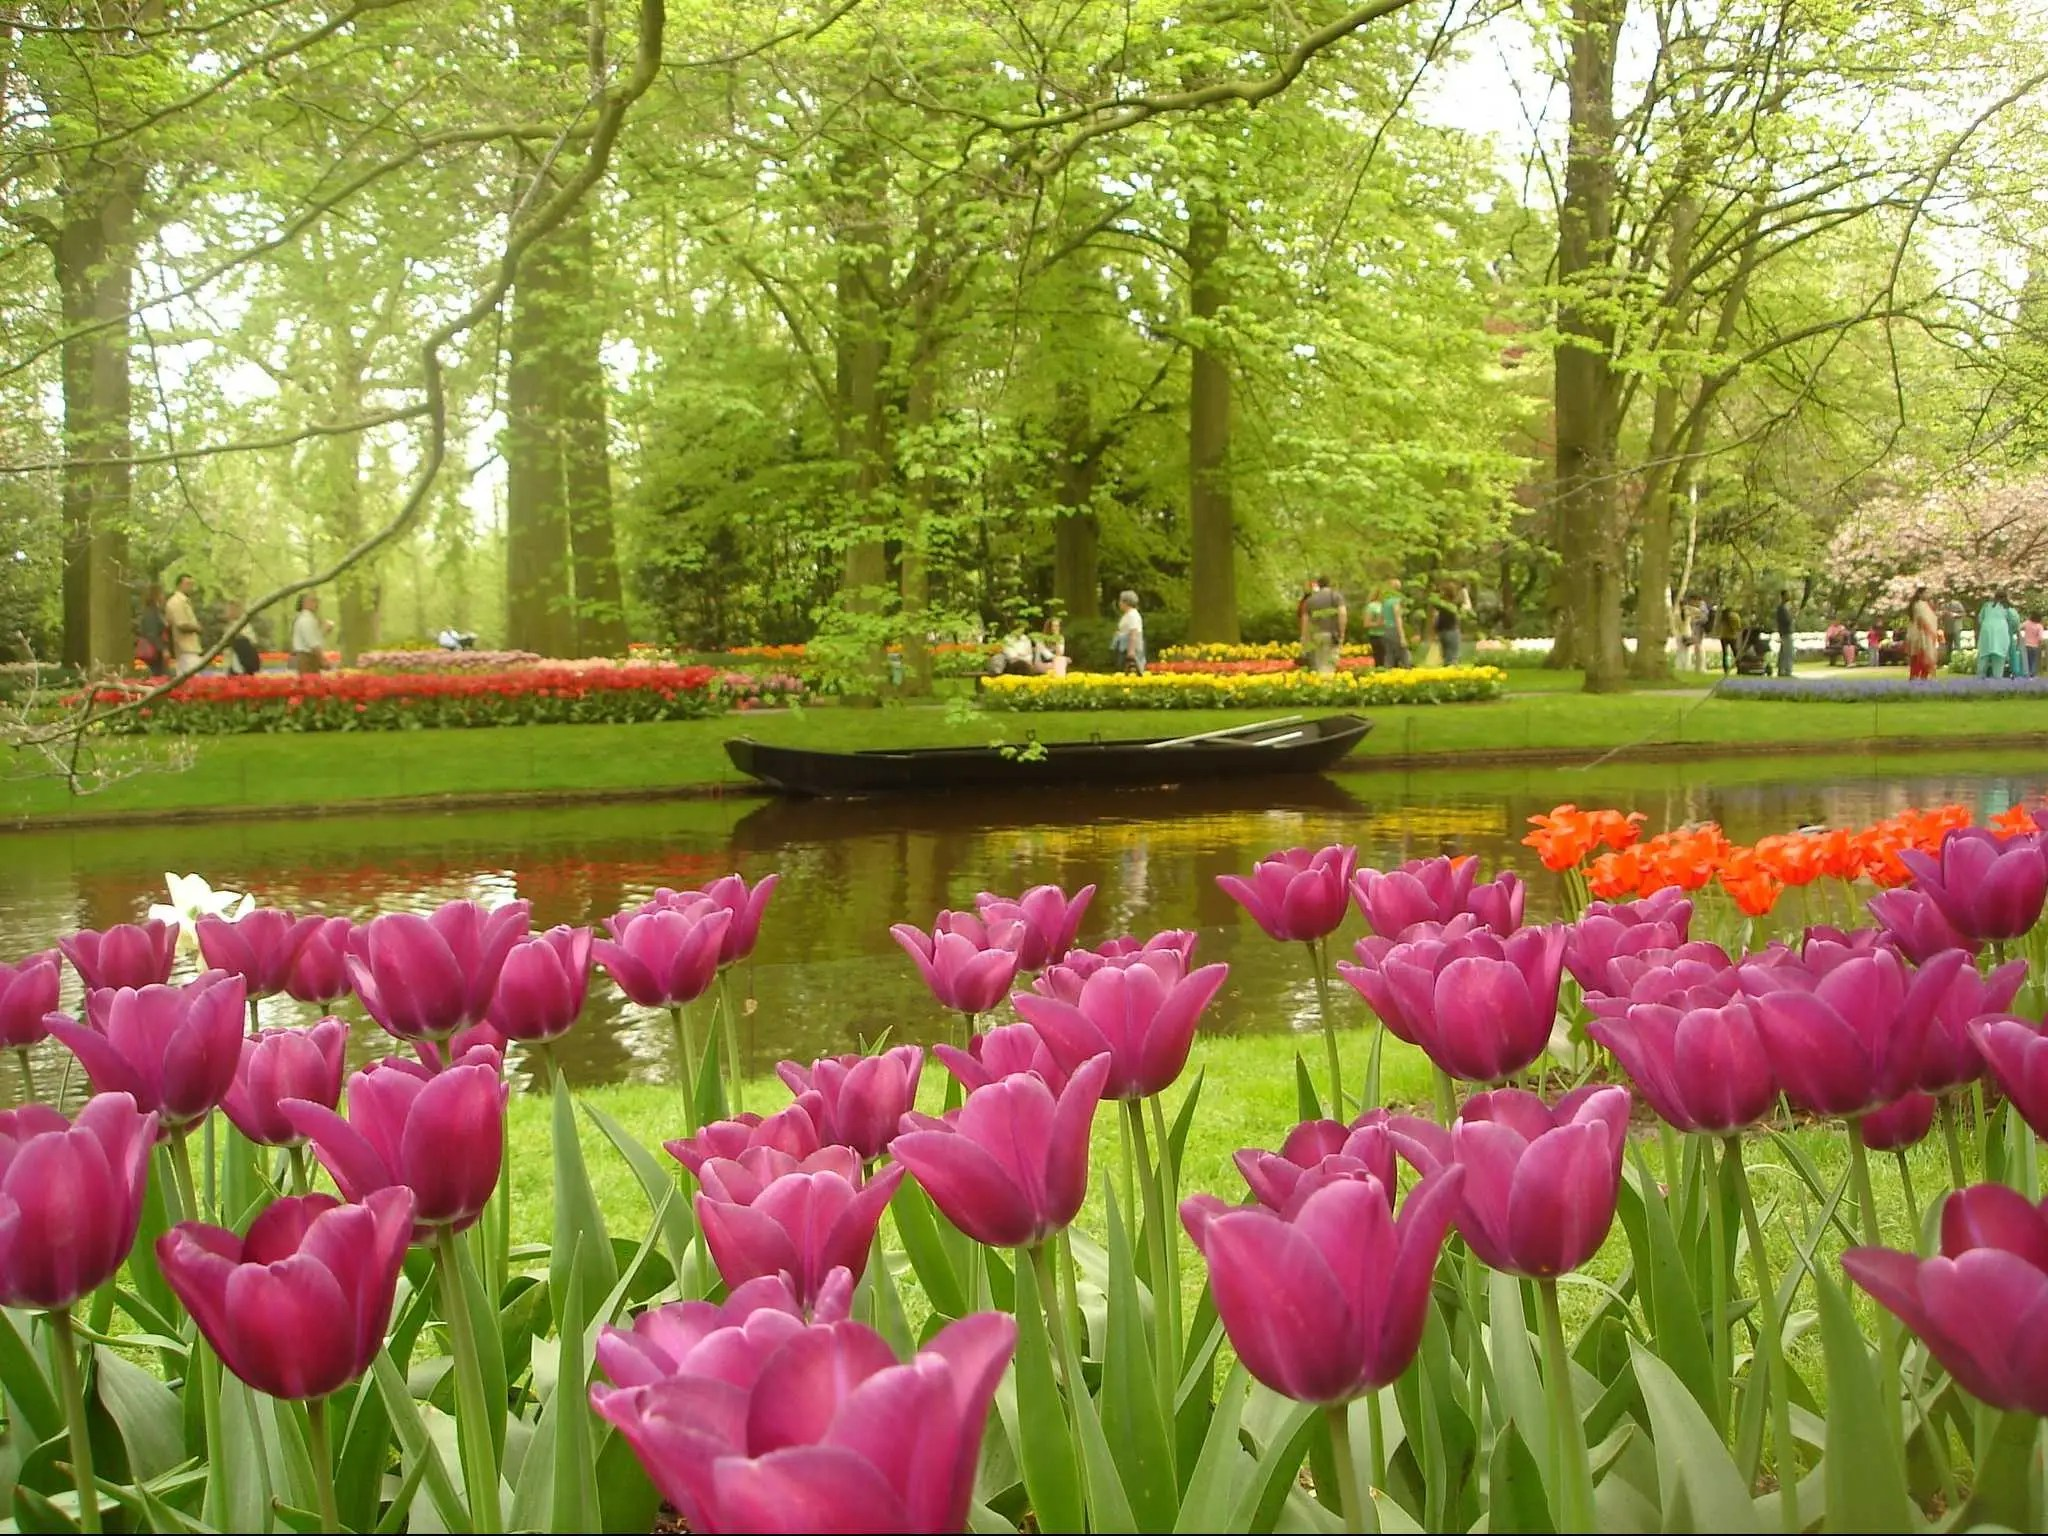 Smell the tulips at Keukenhof, a vast flower garden in Lisse, the Netherlands.